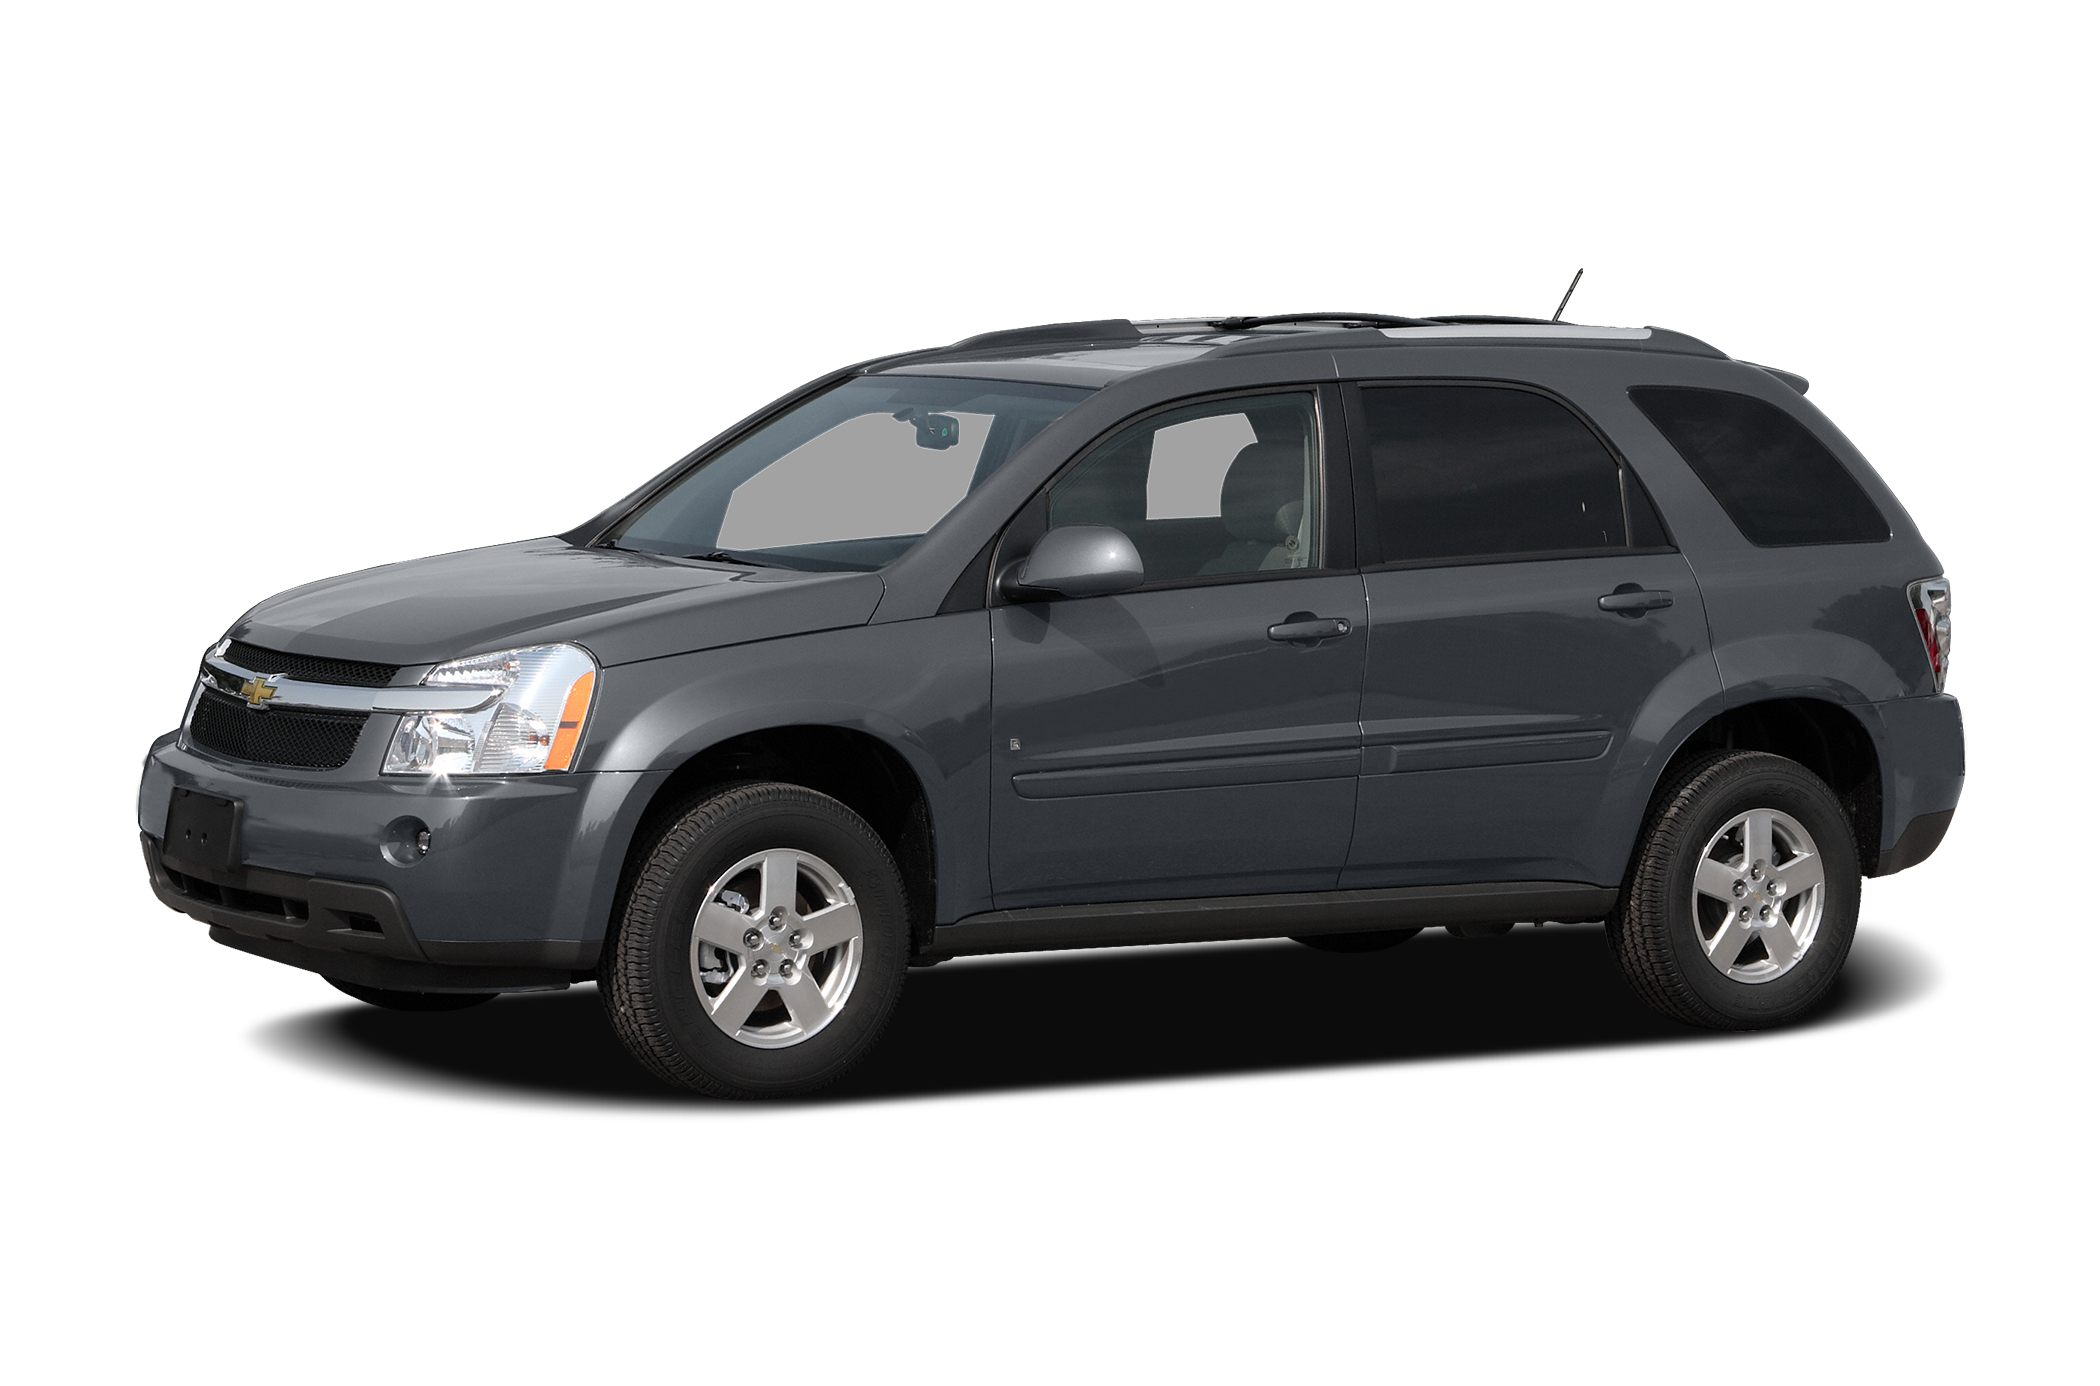 2009 Chevrolet Equinox LS SUV for sale in Pueblo for $9,581 with 128,558 miles